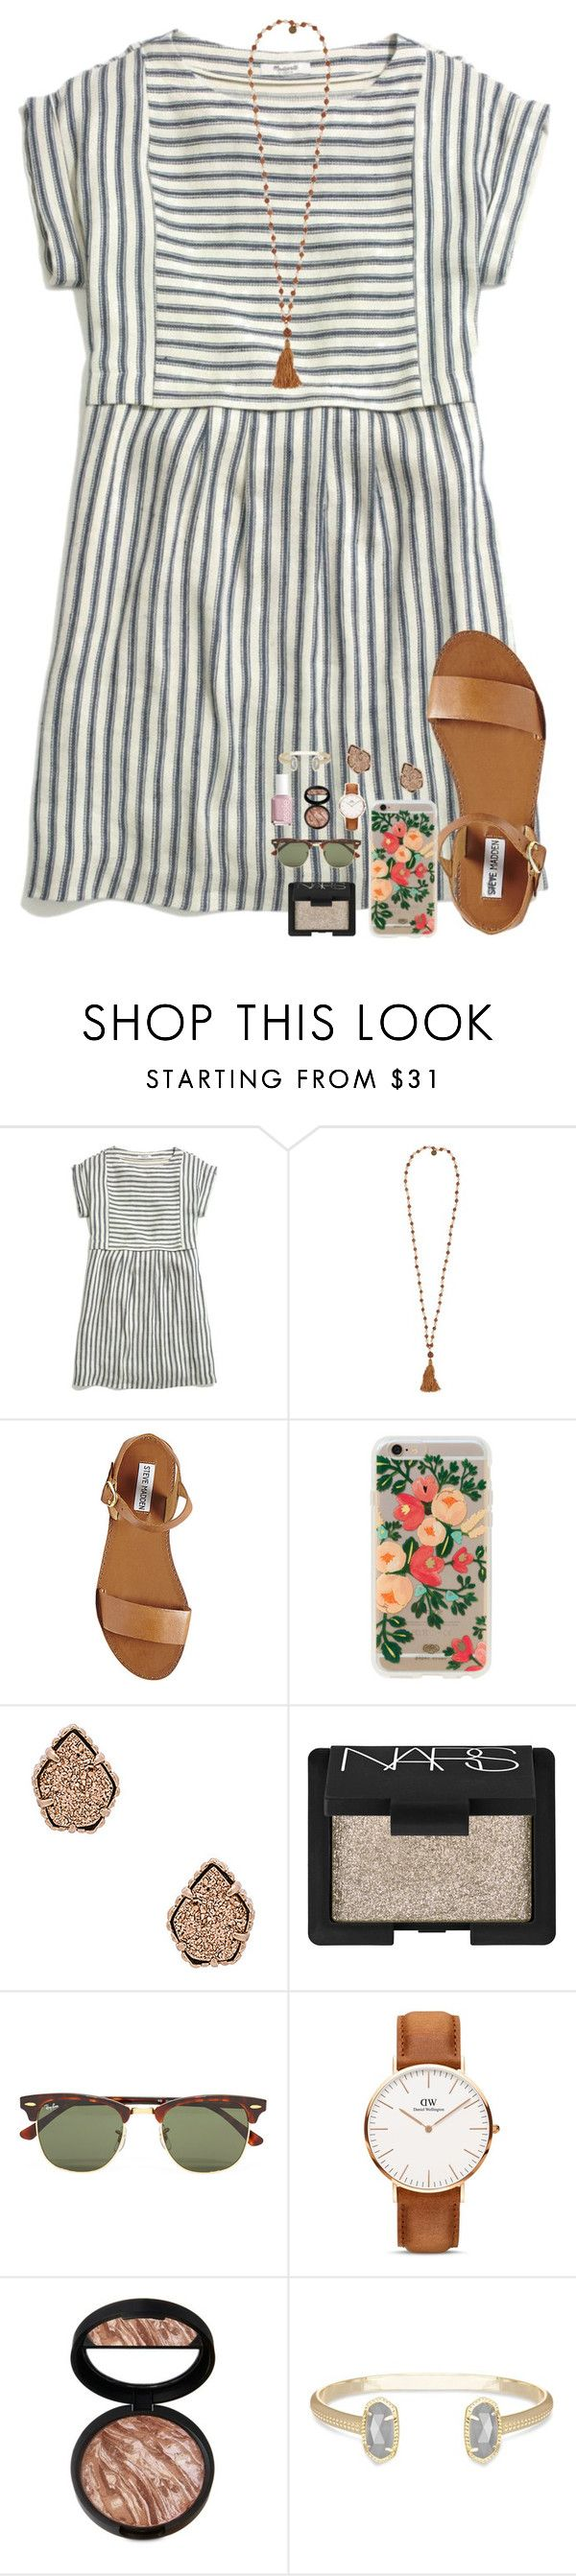 """getting close to 1K!!!"" by morganmestan ❤ liked on Polyvore featuring Madewell, Cocobelle, Steve Madden, Rifle Paper Co, Kendra Scott, NARS Cosmetics, Ray-Ban, Daniel Wellington and Essie"